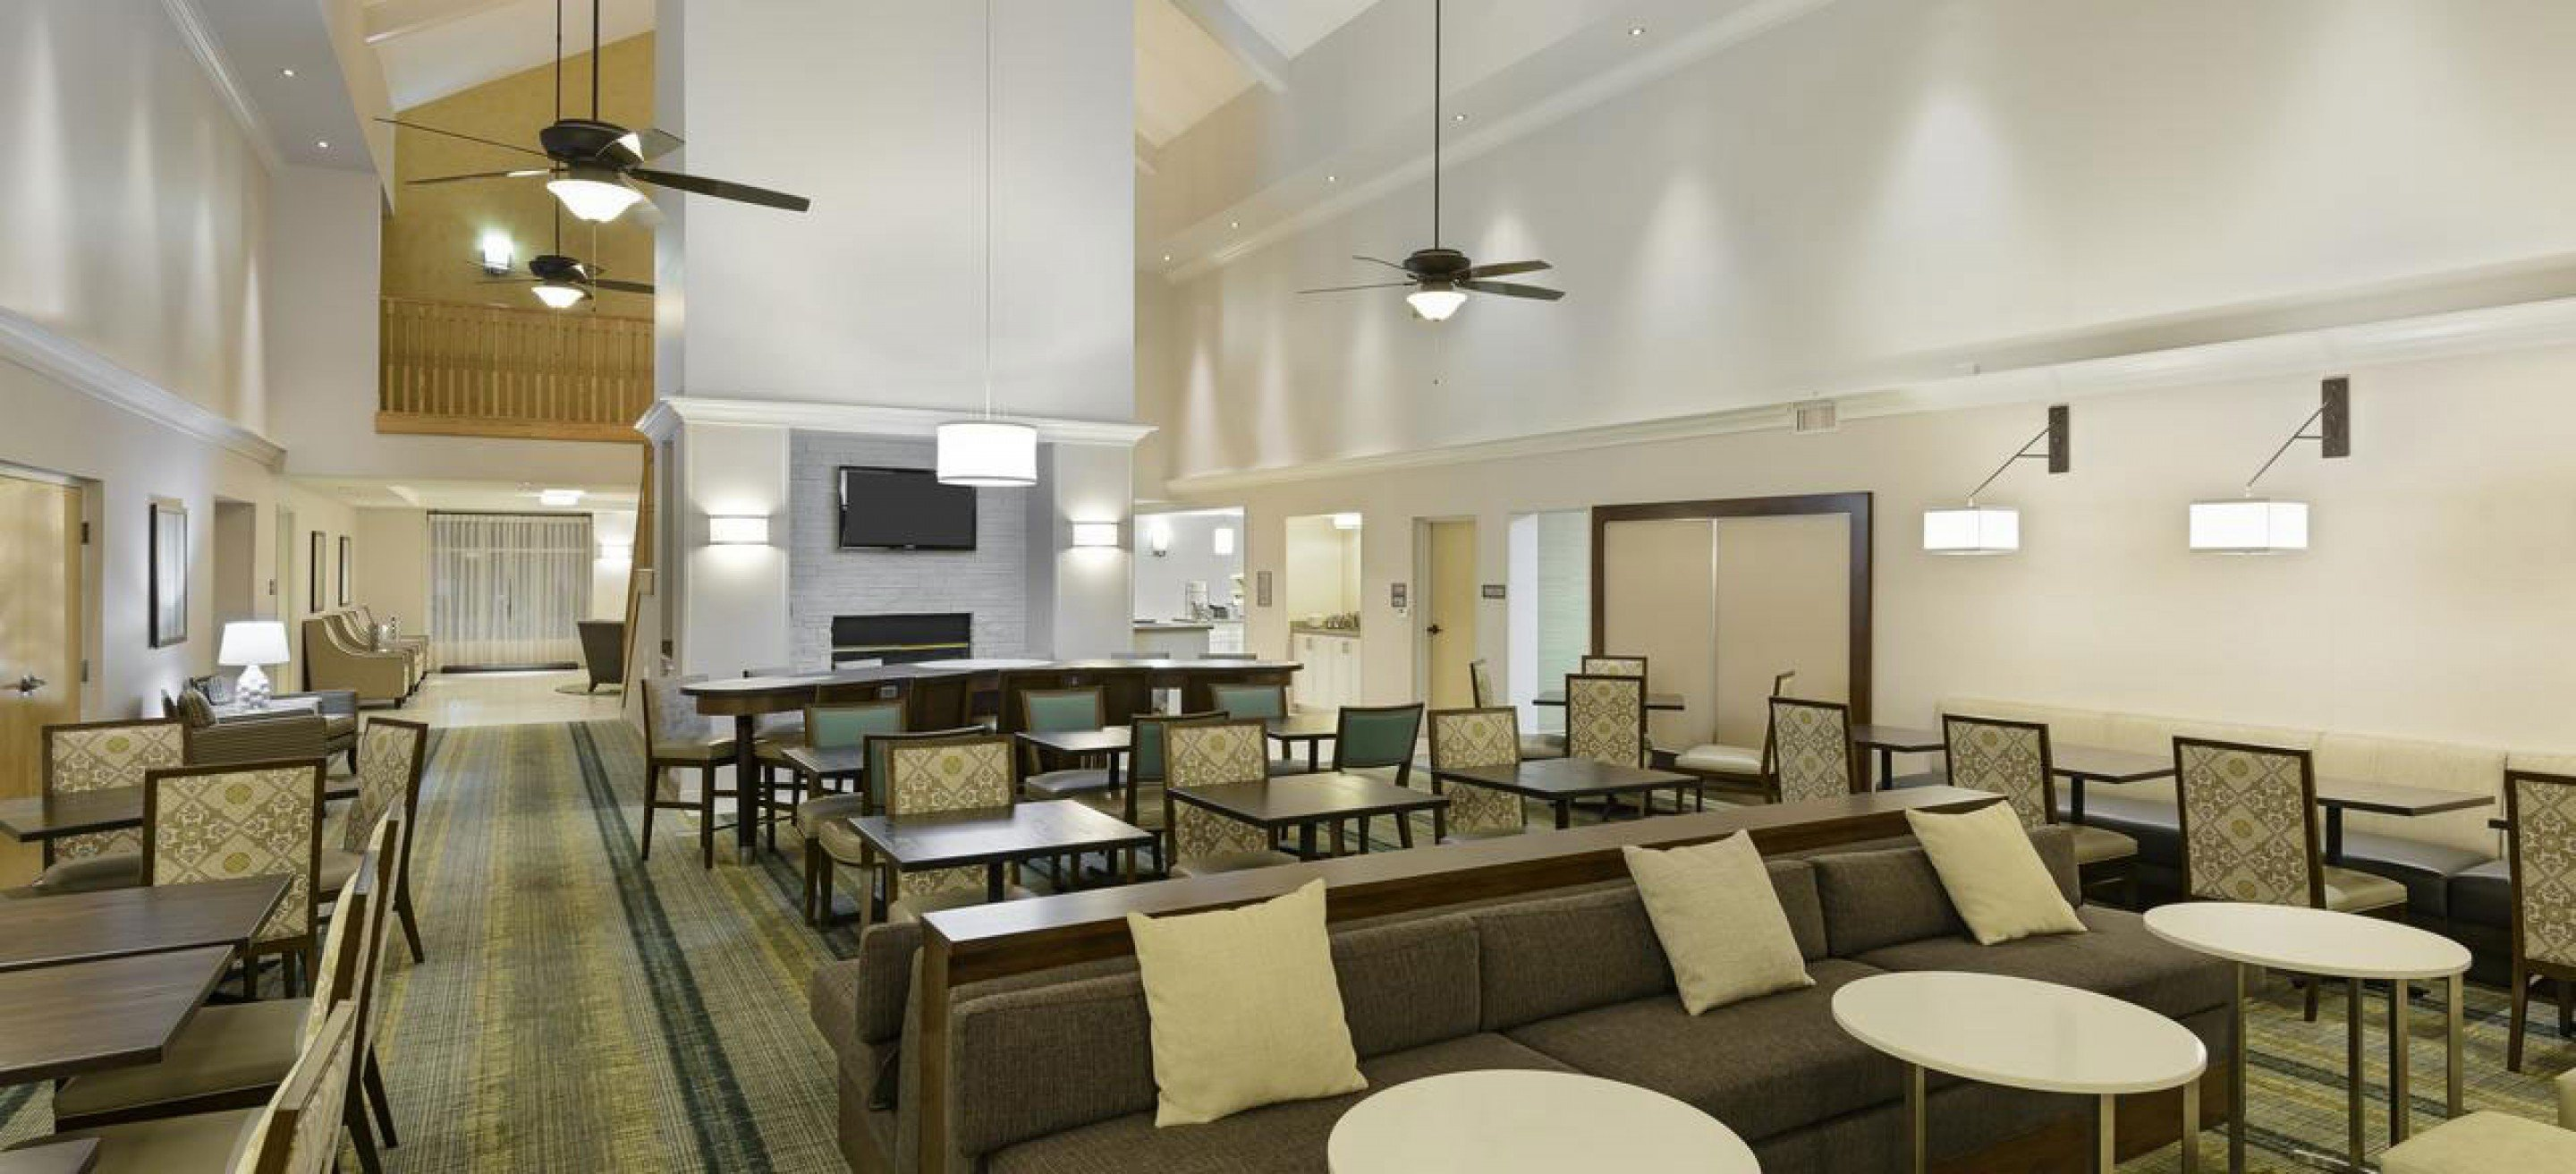 The Gettys One team implemented Hilton's Take Flight initiative for the Homewood Suites in the Phoenix-Metro Center Hilton.